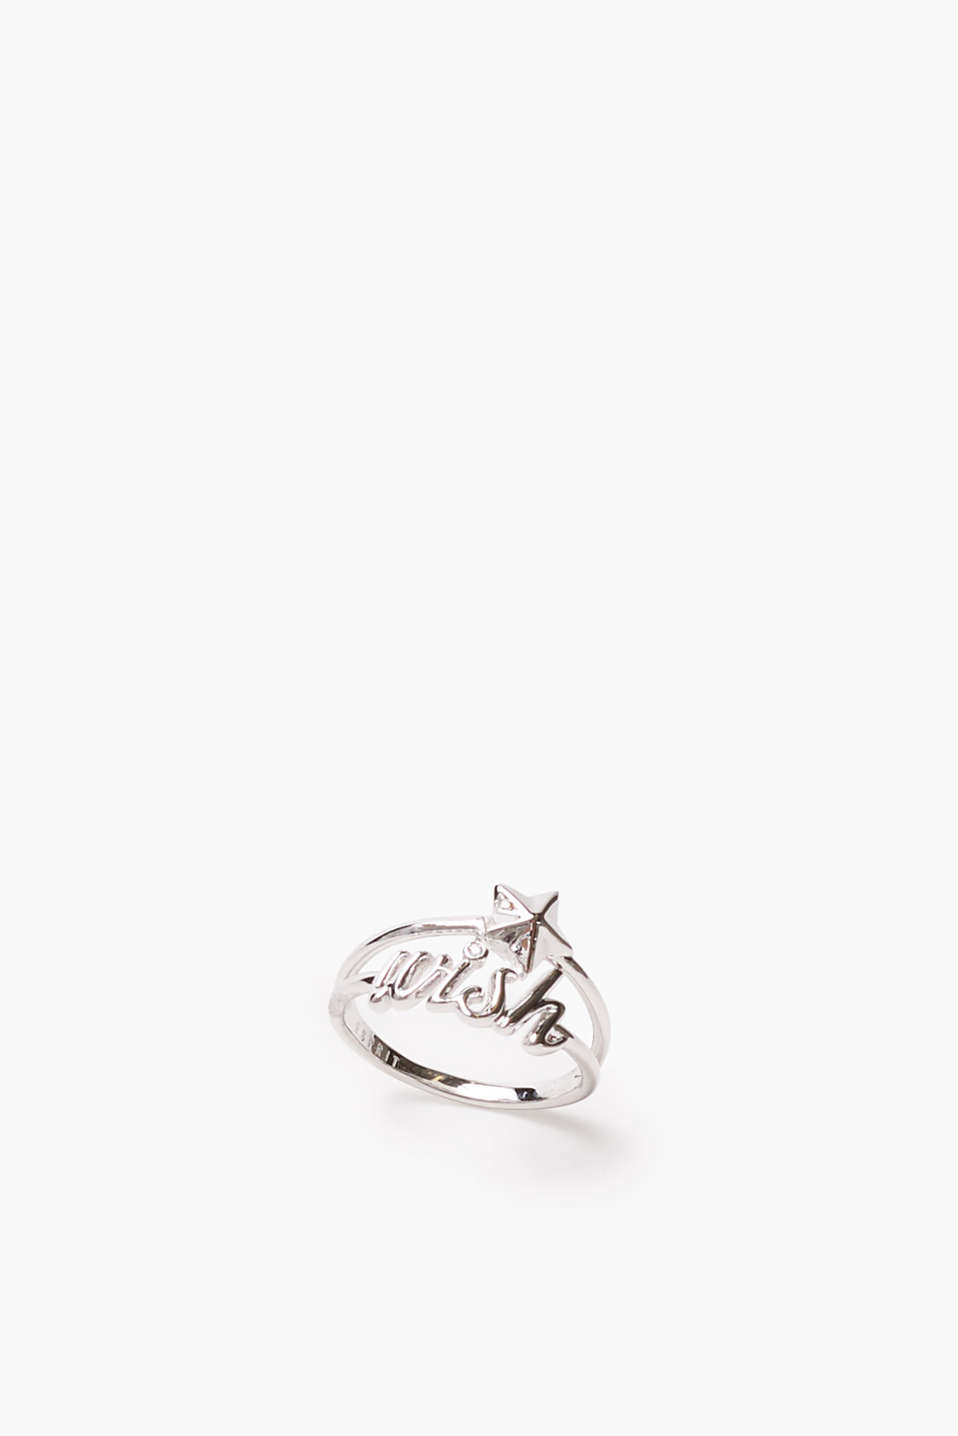 High-quality ring with wish in writing plus a star, width approx. 13 mm